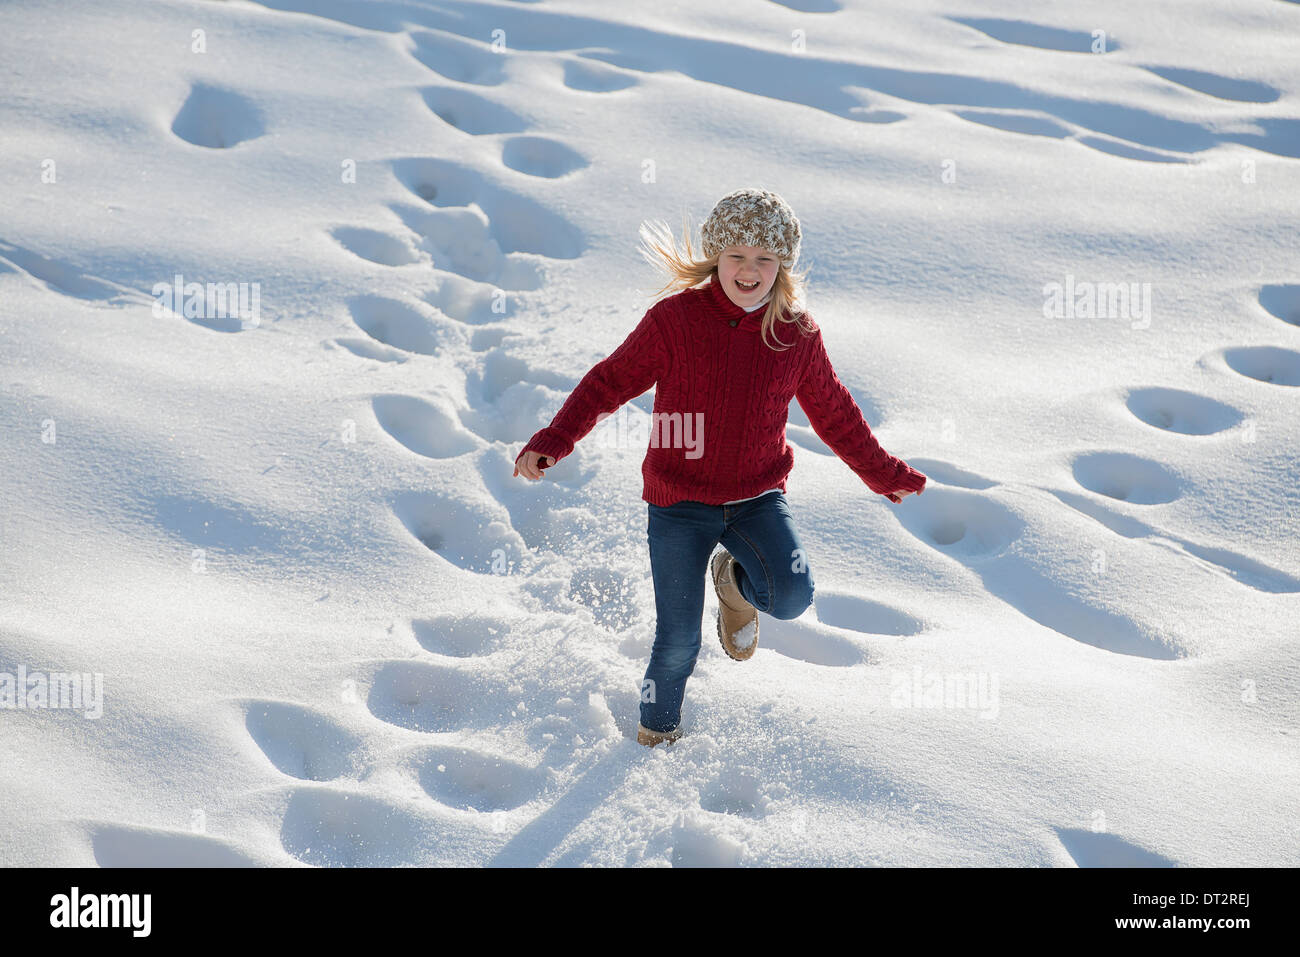 Winter scenery with snow on the ground A young girl running through deep snow making footprint tracks - Stock Image